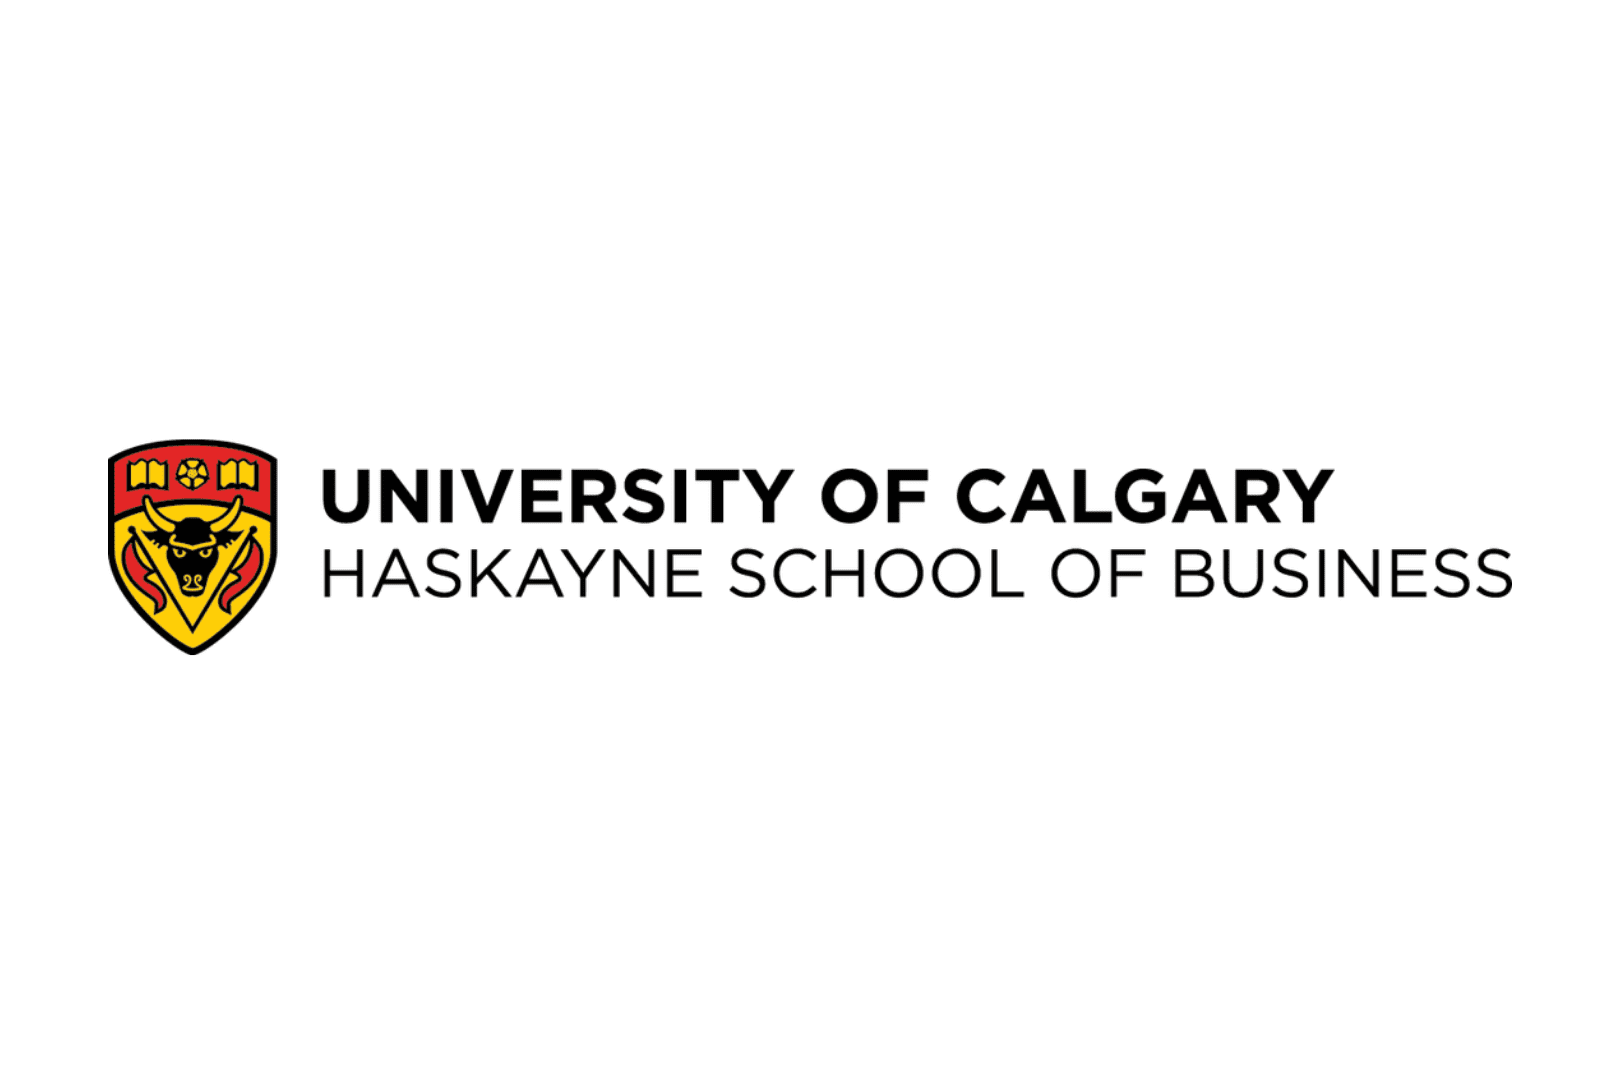 University of Calgary Partners Logo for Partners Section About Us (1)